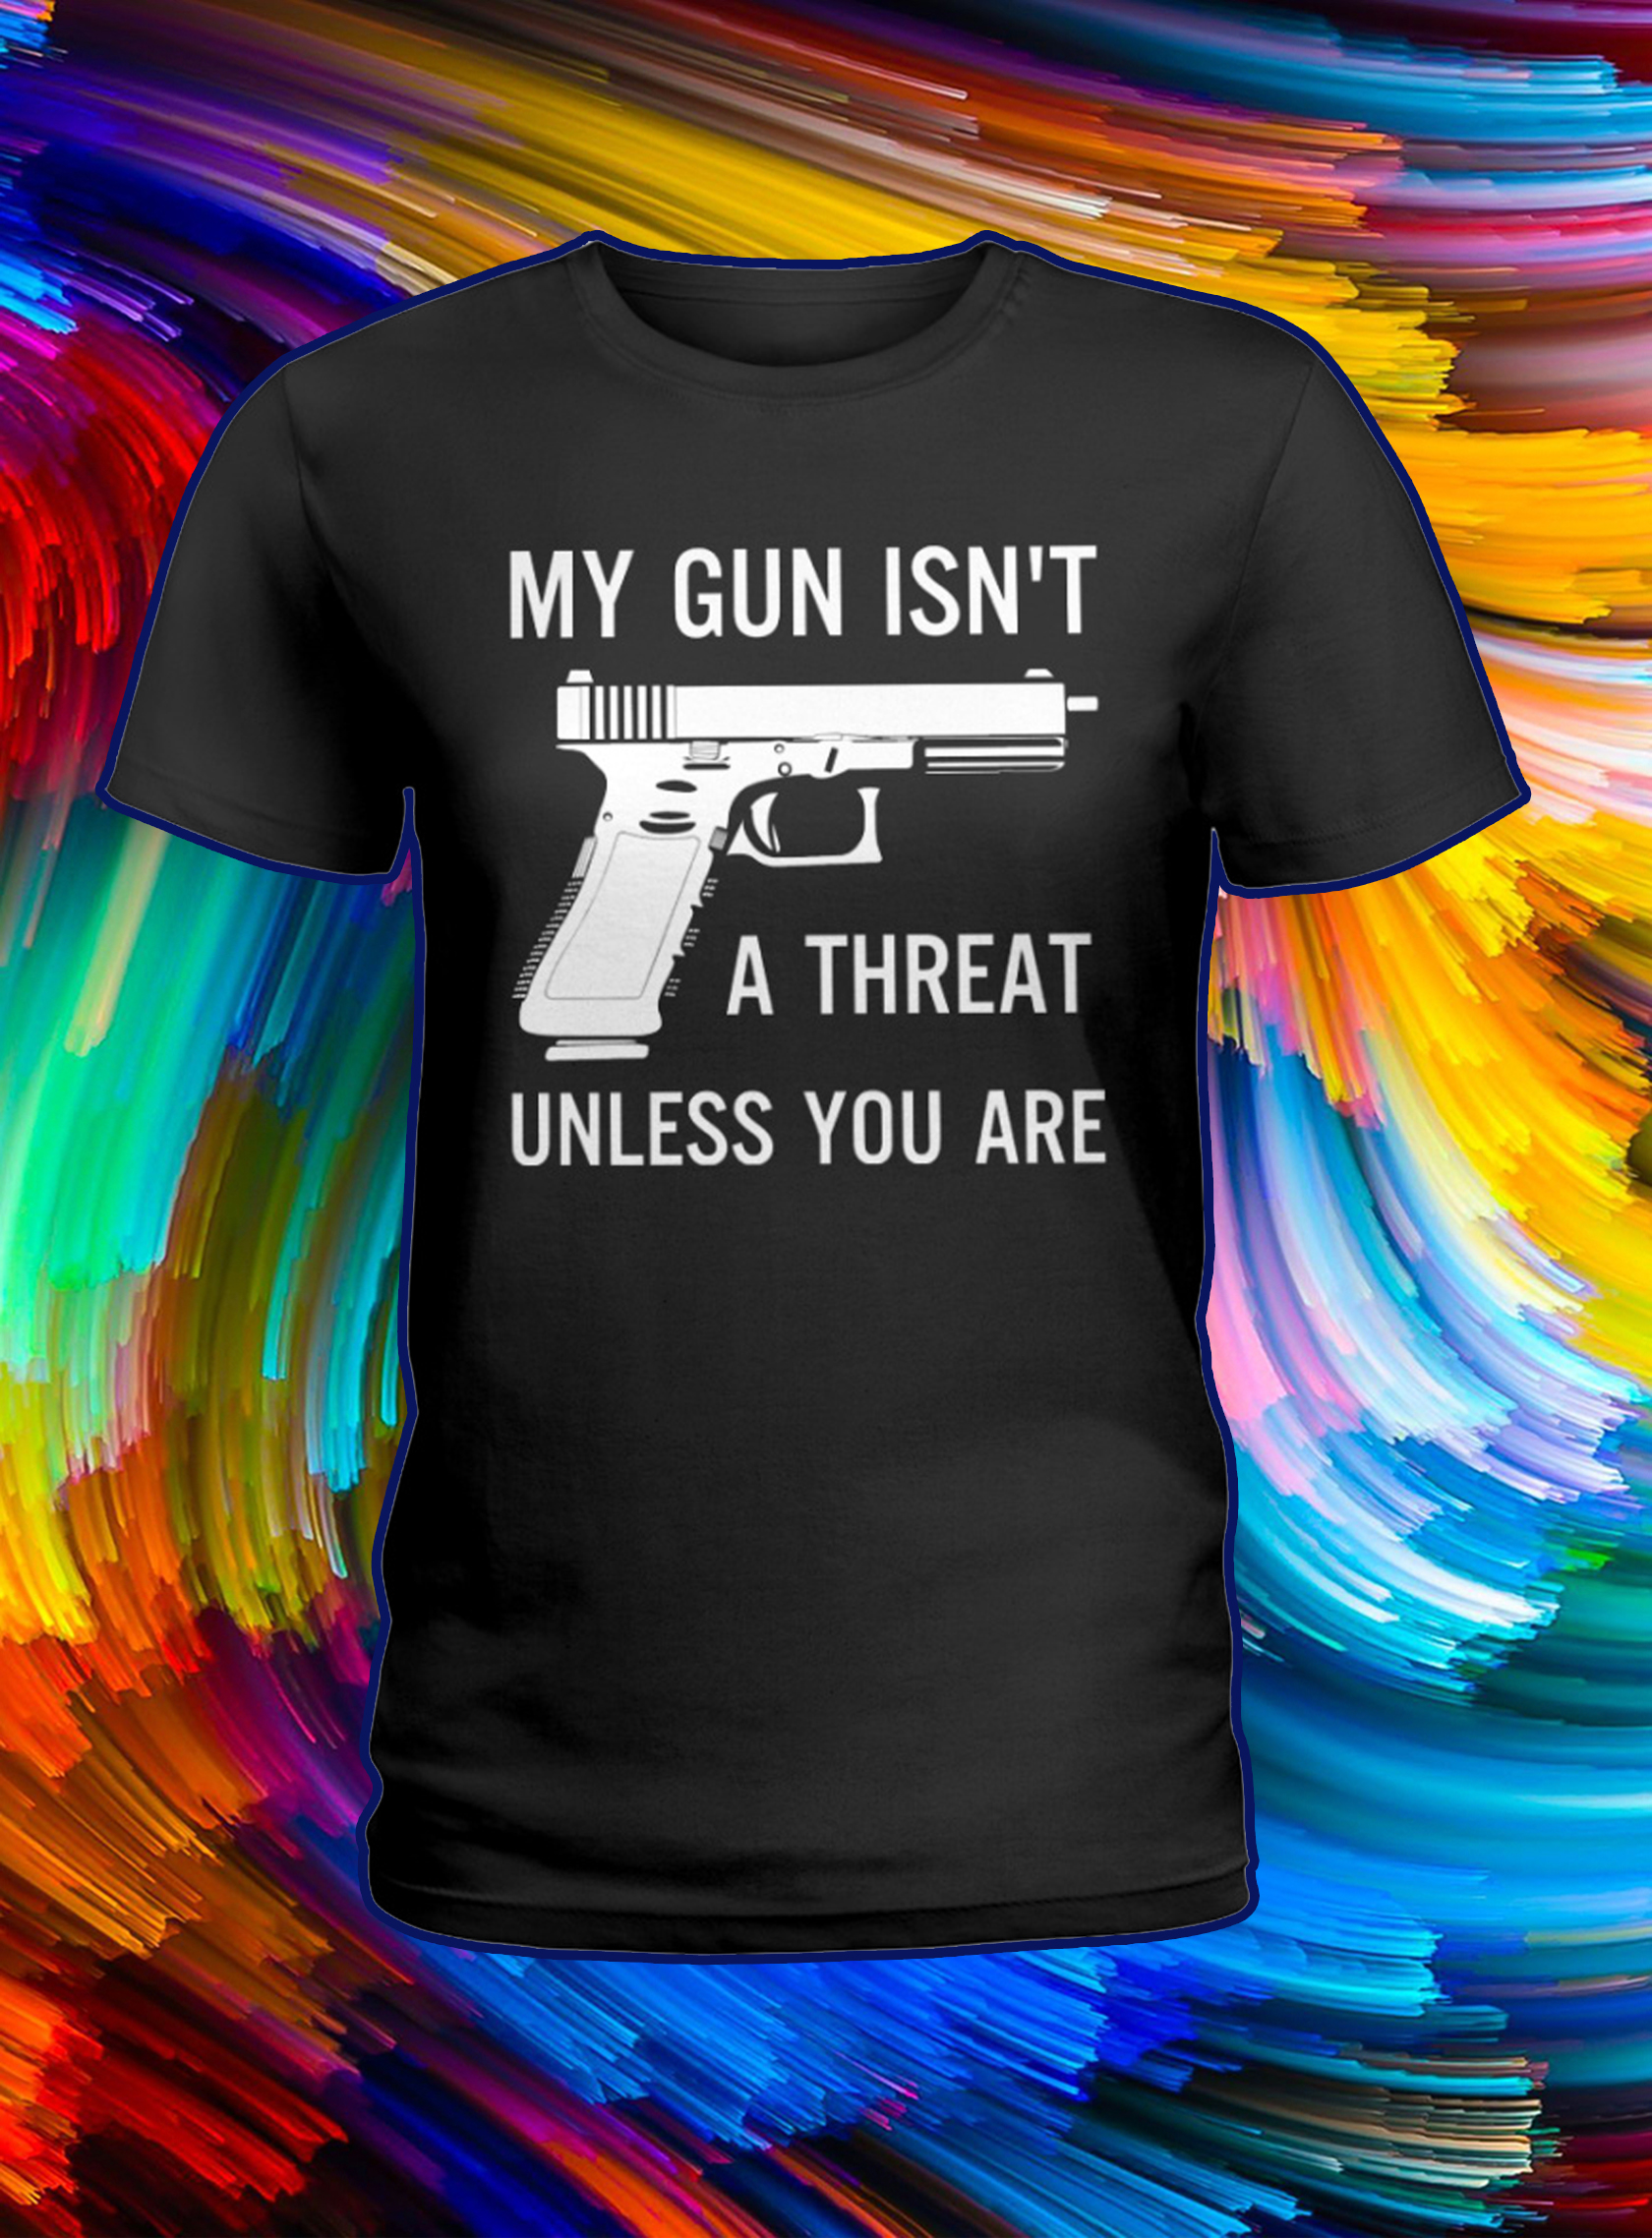 My gun isn't a threat unless you are lady shirt